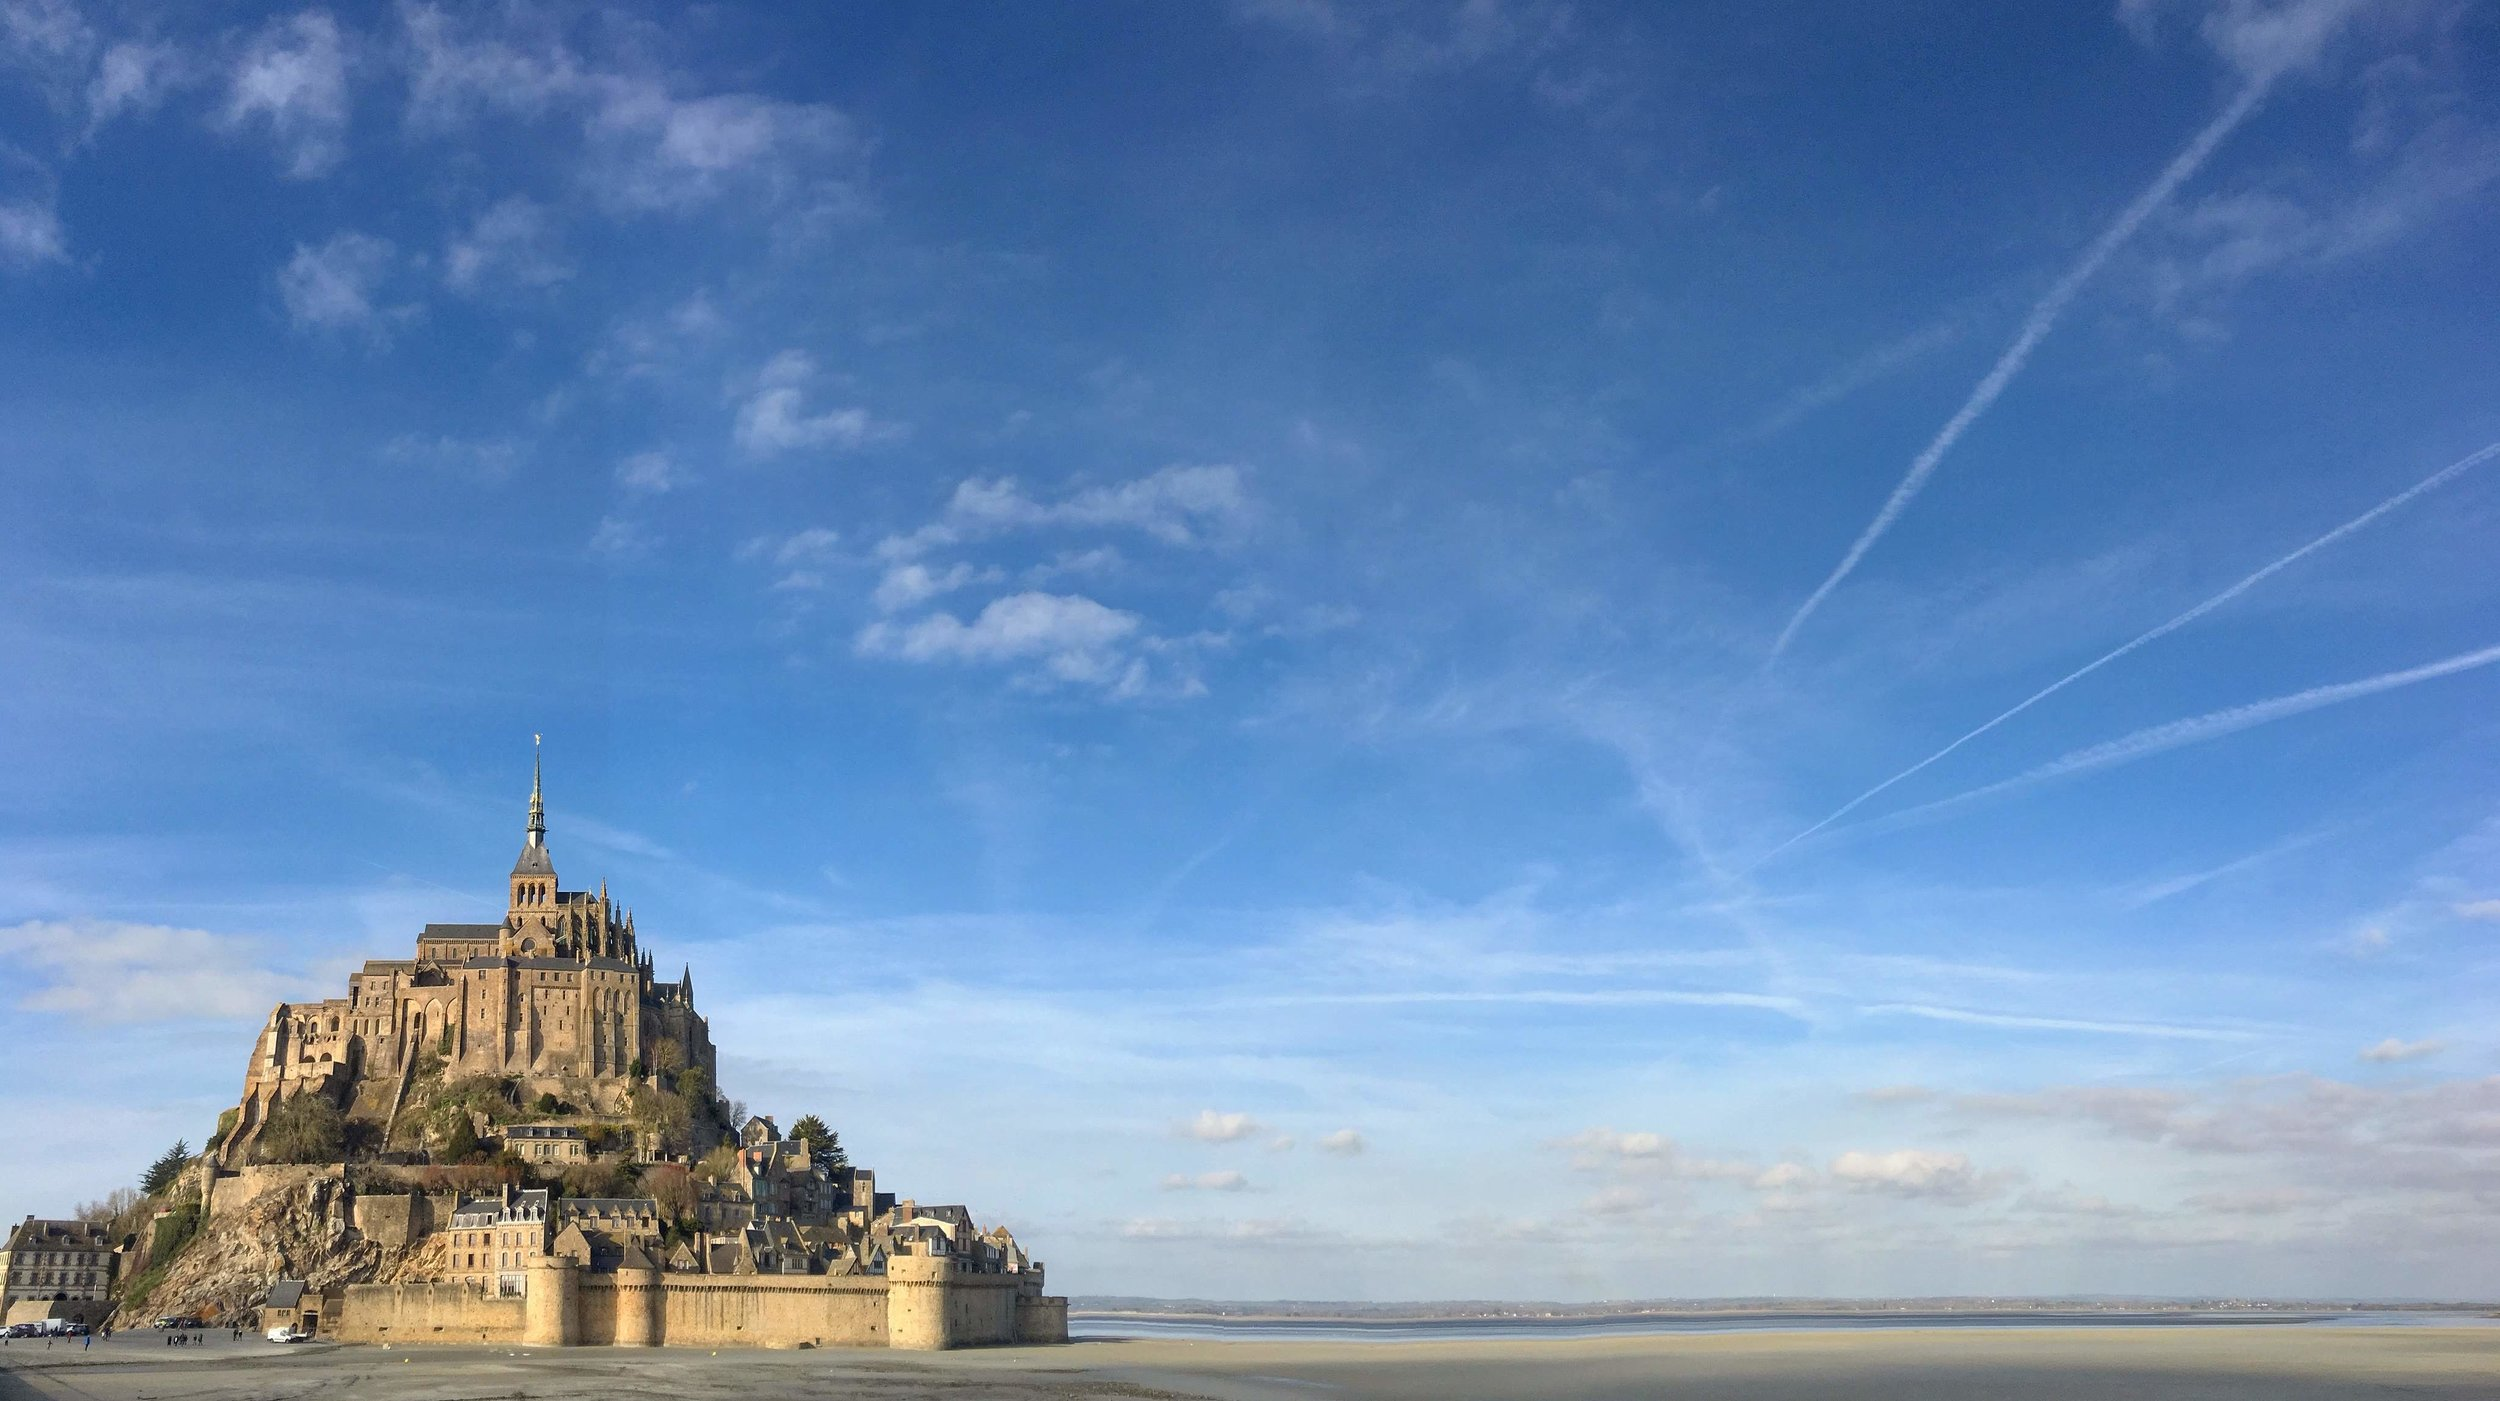 Le Mont Saint Michel from a distance